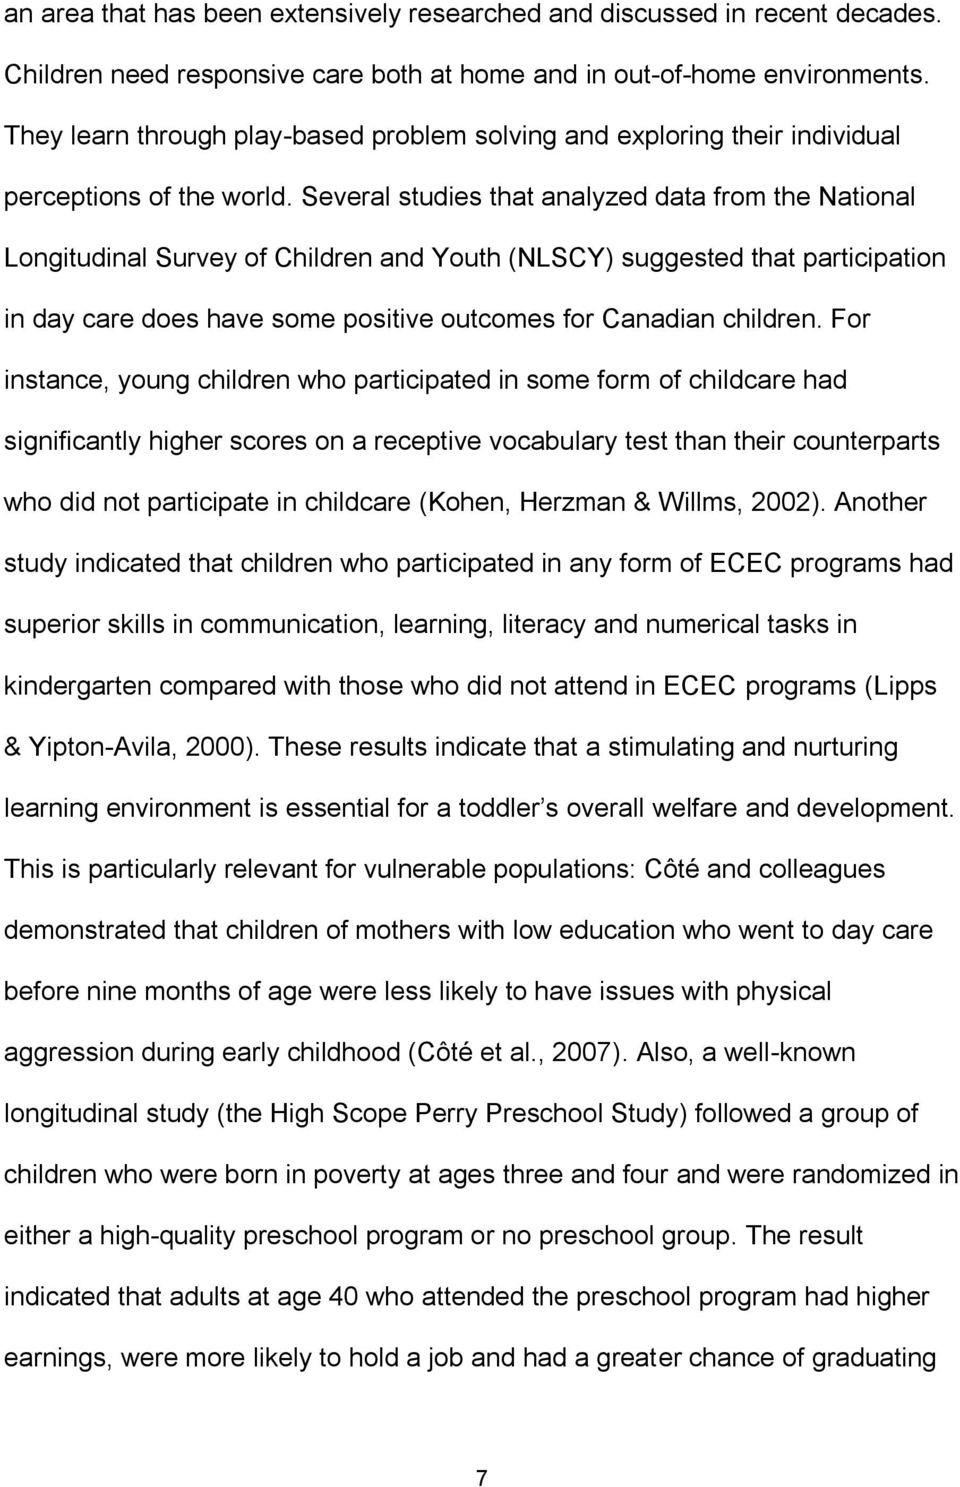 Several studies that analyzed data from the National Longitudinal Survey of Children and Youth (NLSCY) suggested that participation in day care does have some positive outcomes for Canadian children.